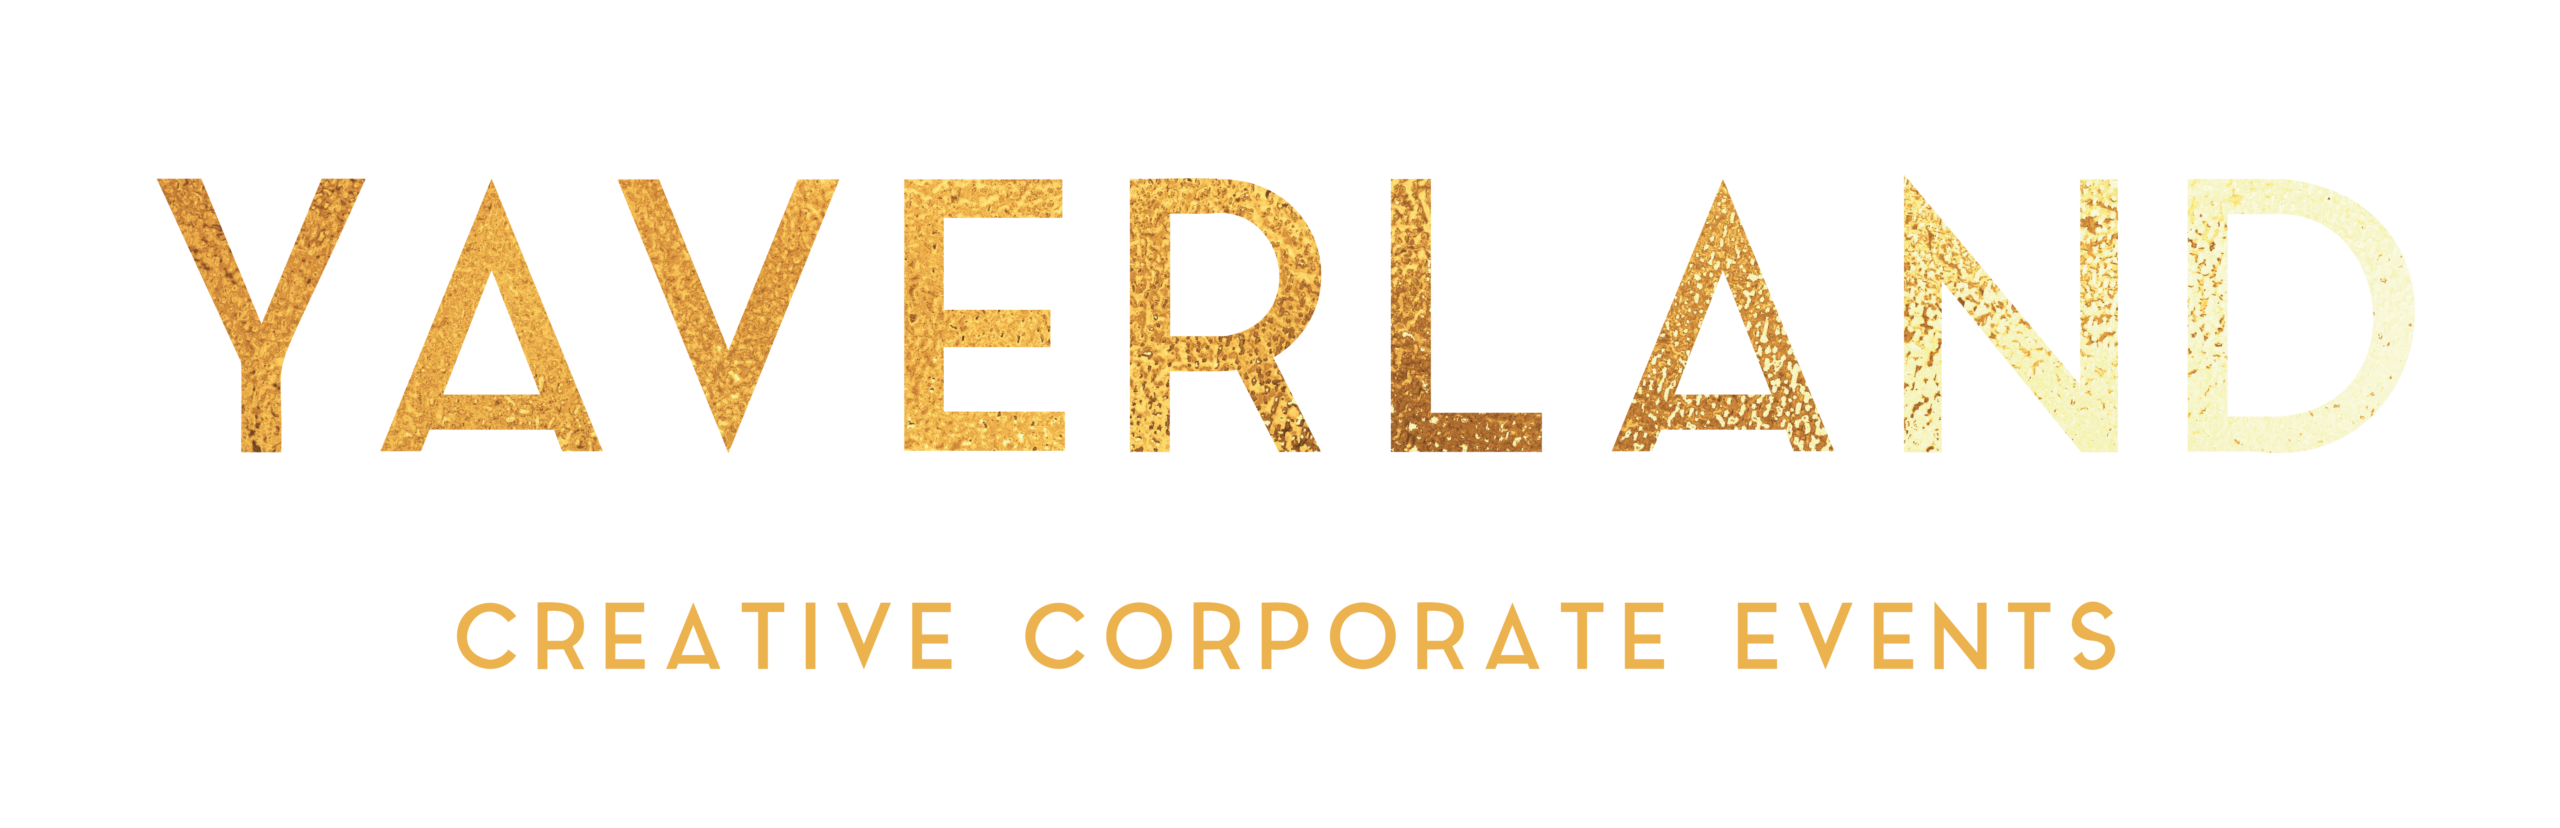 Yaverland's creative focus and passion for excellence results in breath-taking unique events each and every time. Click to find out more about our professional event planning and creative events.